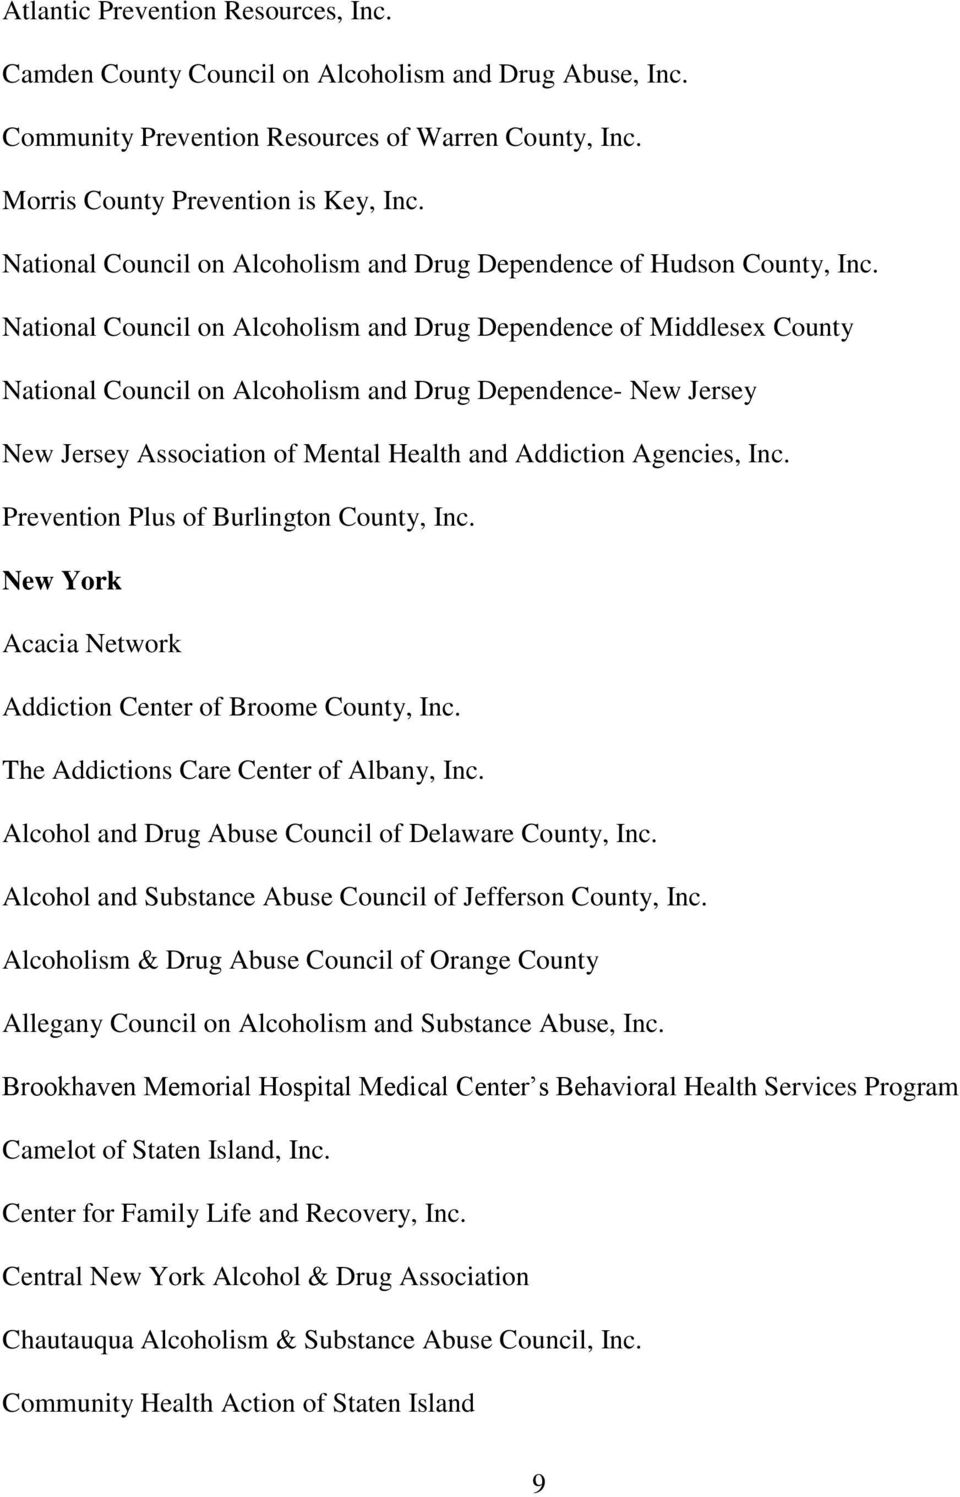 National Council on Alcoholism and Drug Dependence of Middlesex County National Council on Alcoholism and Drug Dependence- New Jersey New Jersey Association of Mental Health and Addiction Agencies,